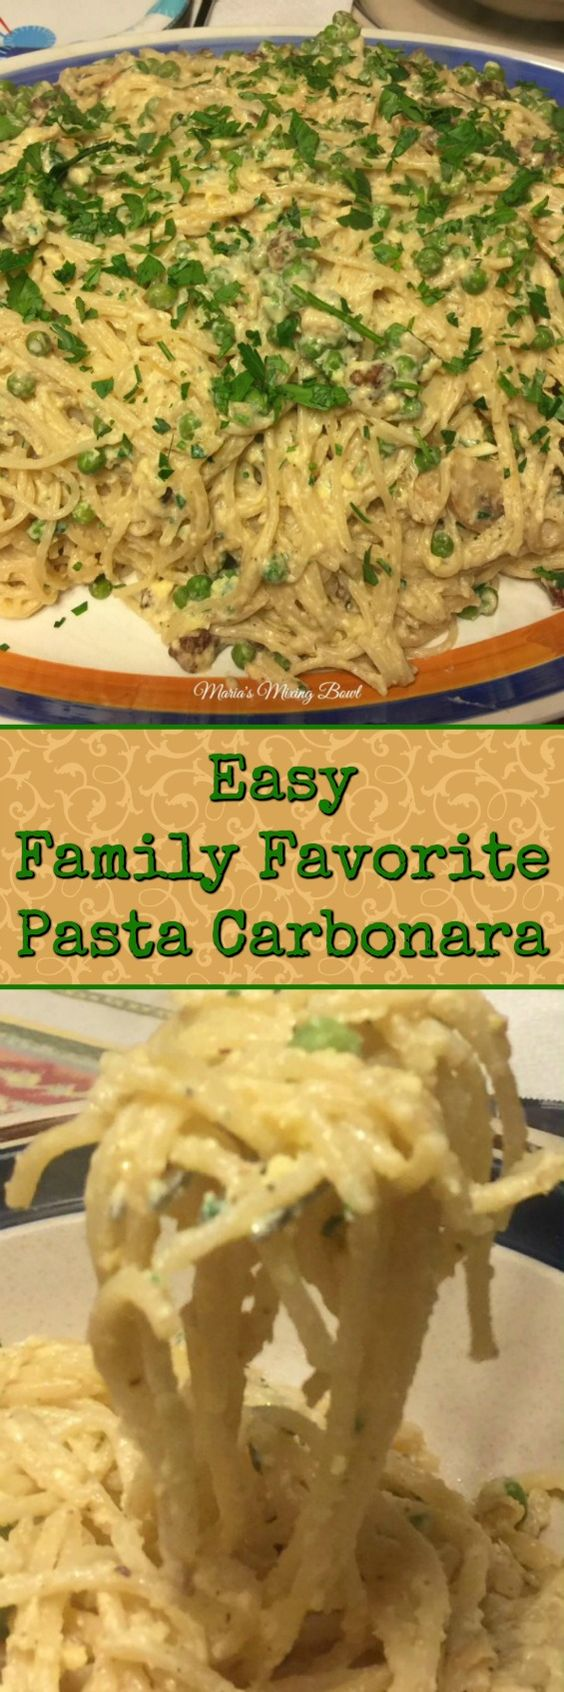 Easy Family Favorite Pasta Carbonara -  is a simple, easy weeknight meal, yet it's classy and elegant enough for a company. Made with pancetta,  peas and lots of Parmesan cheese!